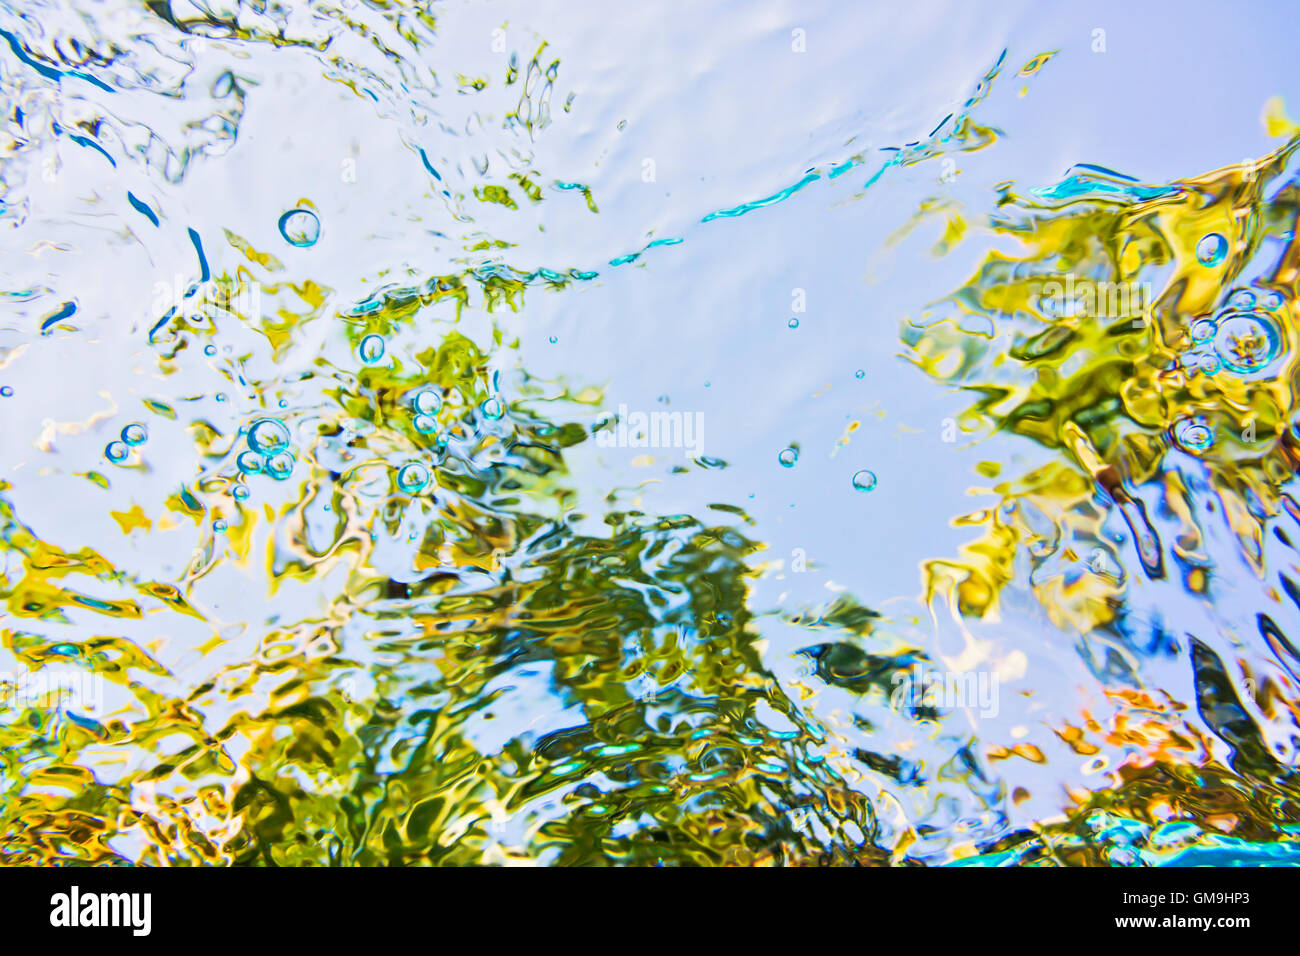 Rippled water - Stock Image